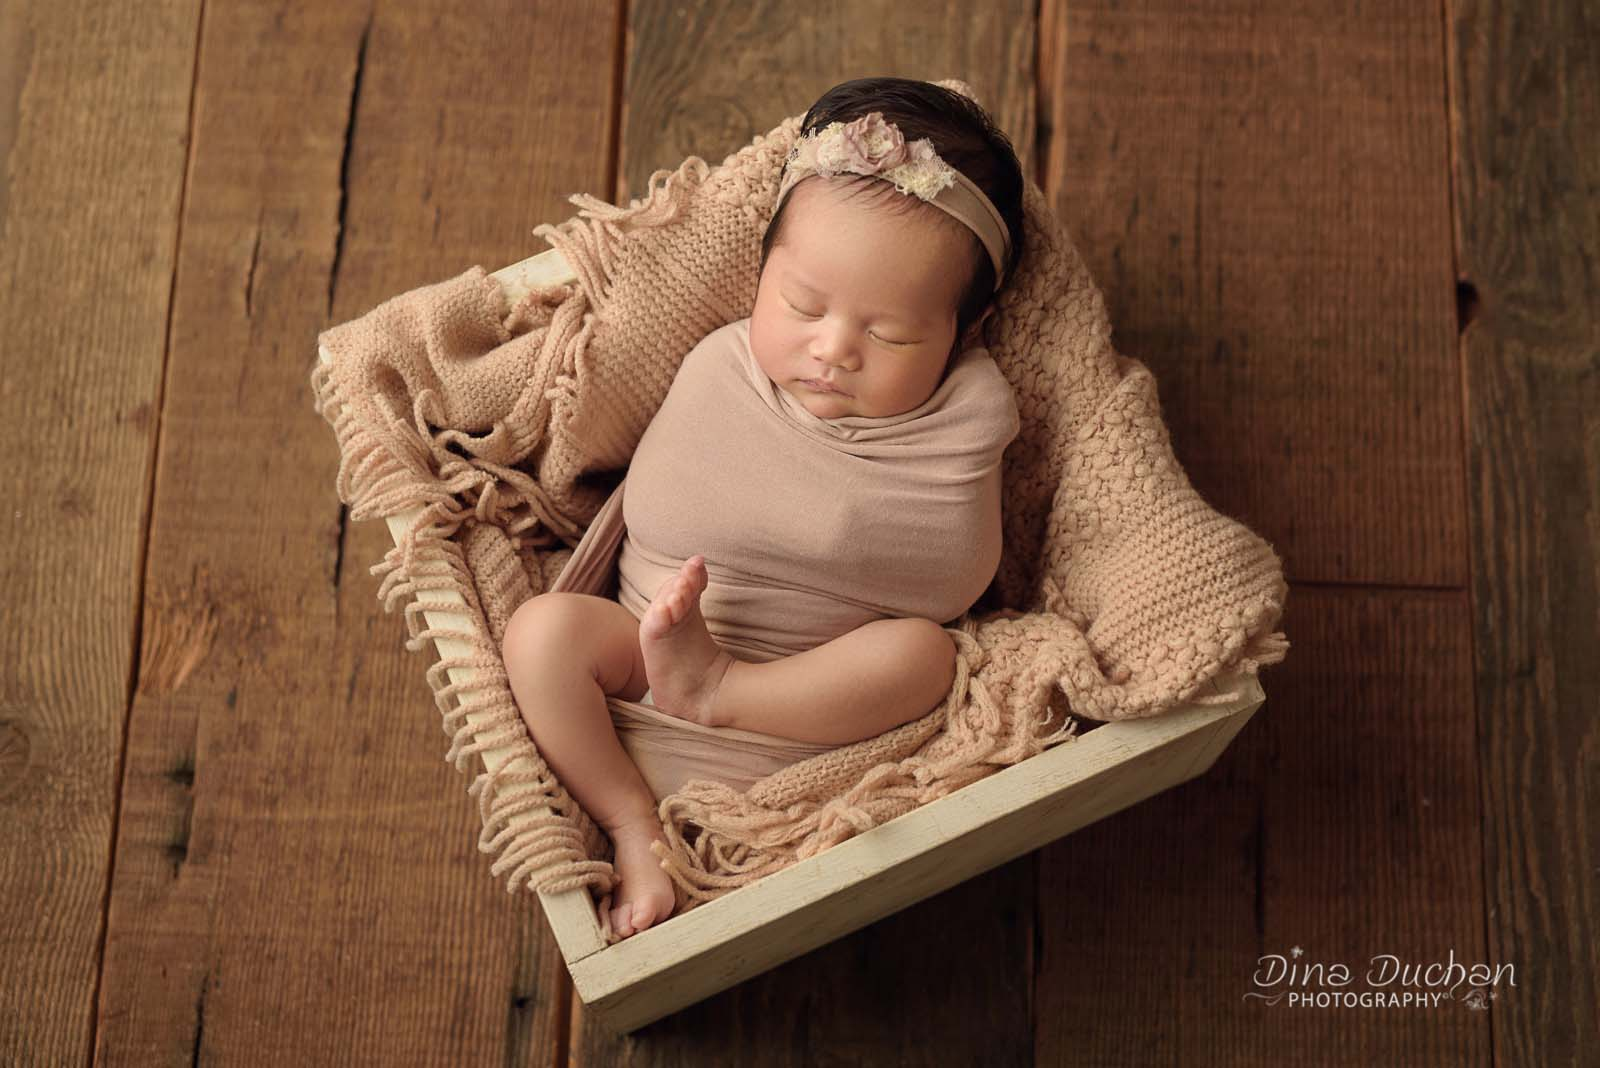 example of bad pose for newborn photo with studio lighting, baby laying in straight line